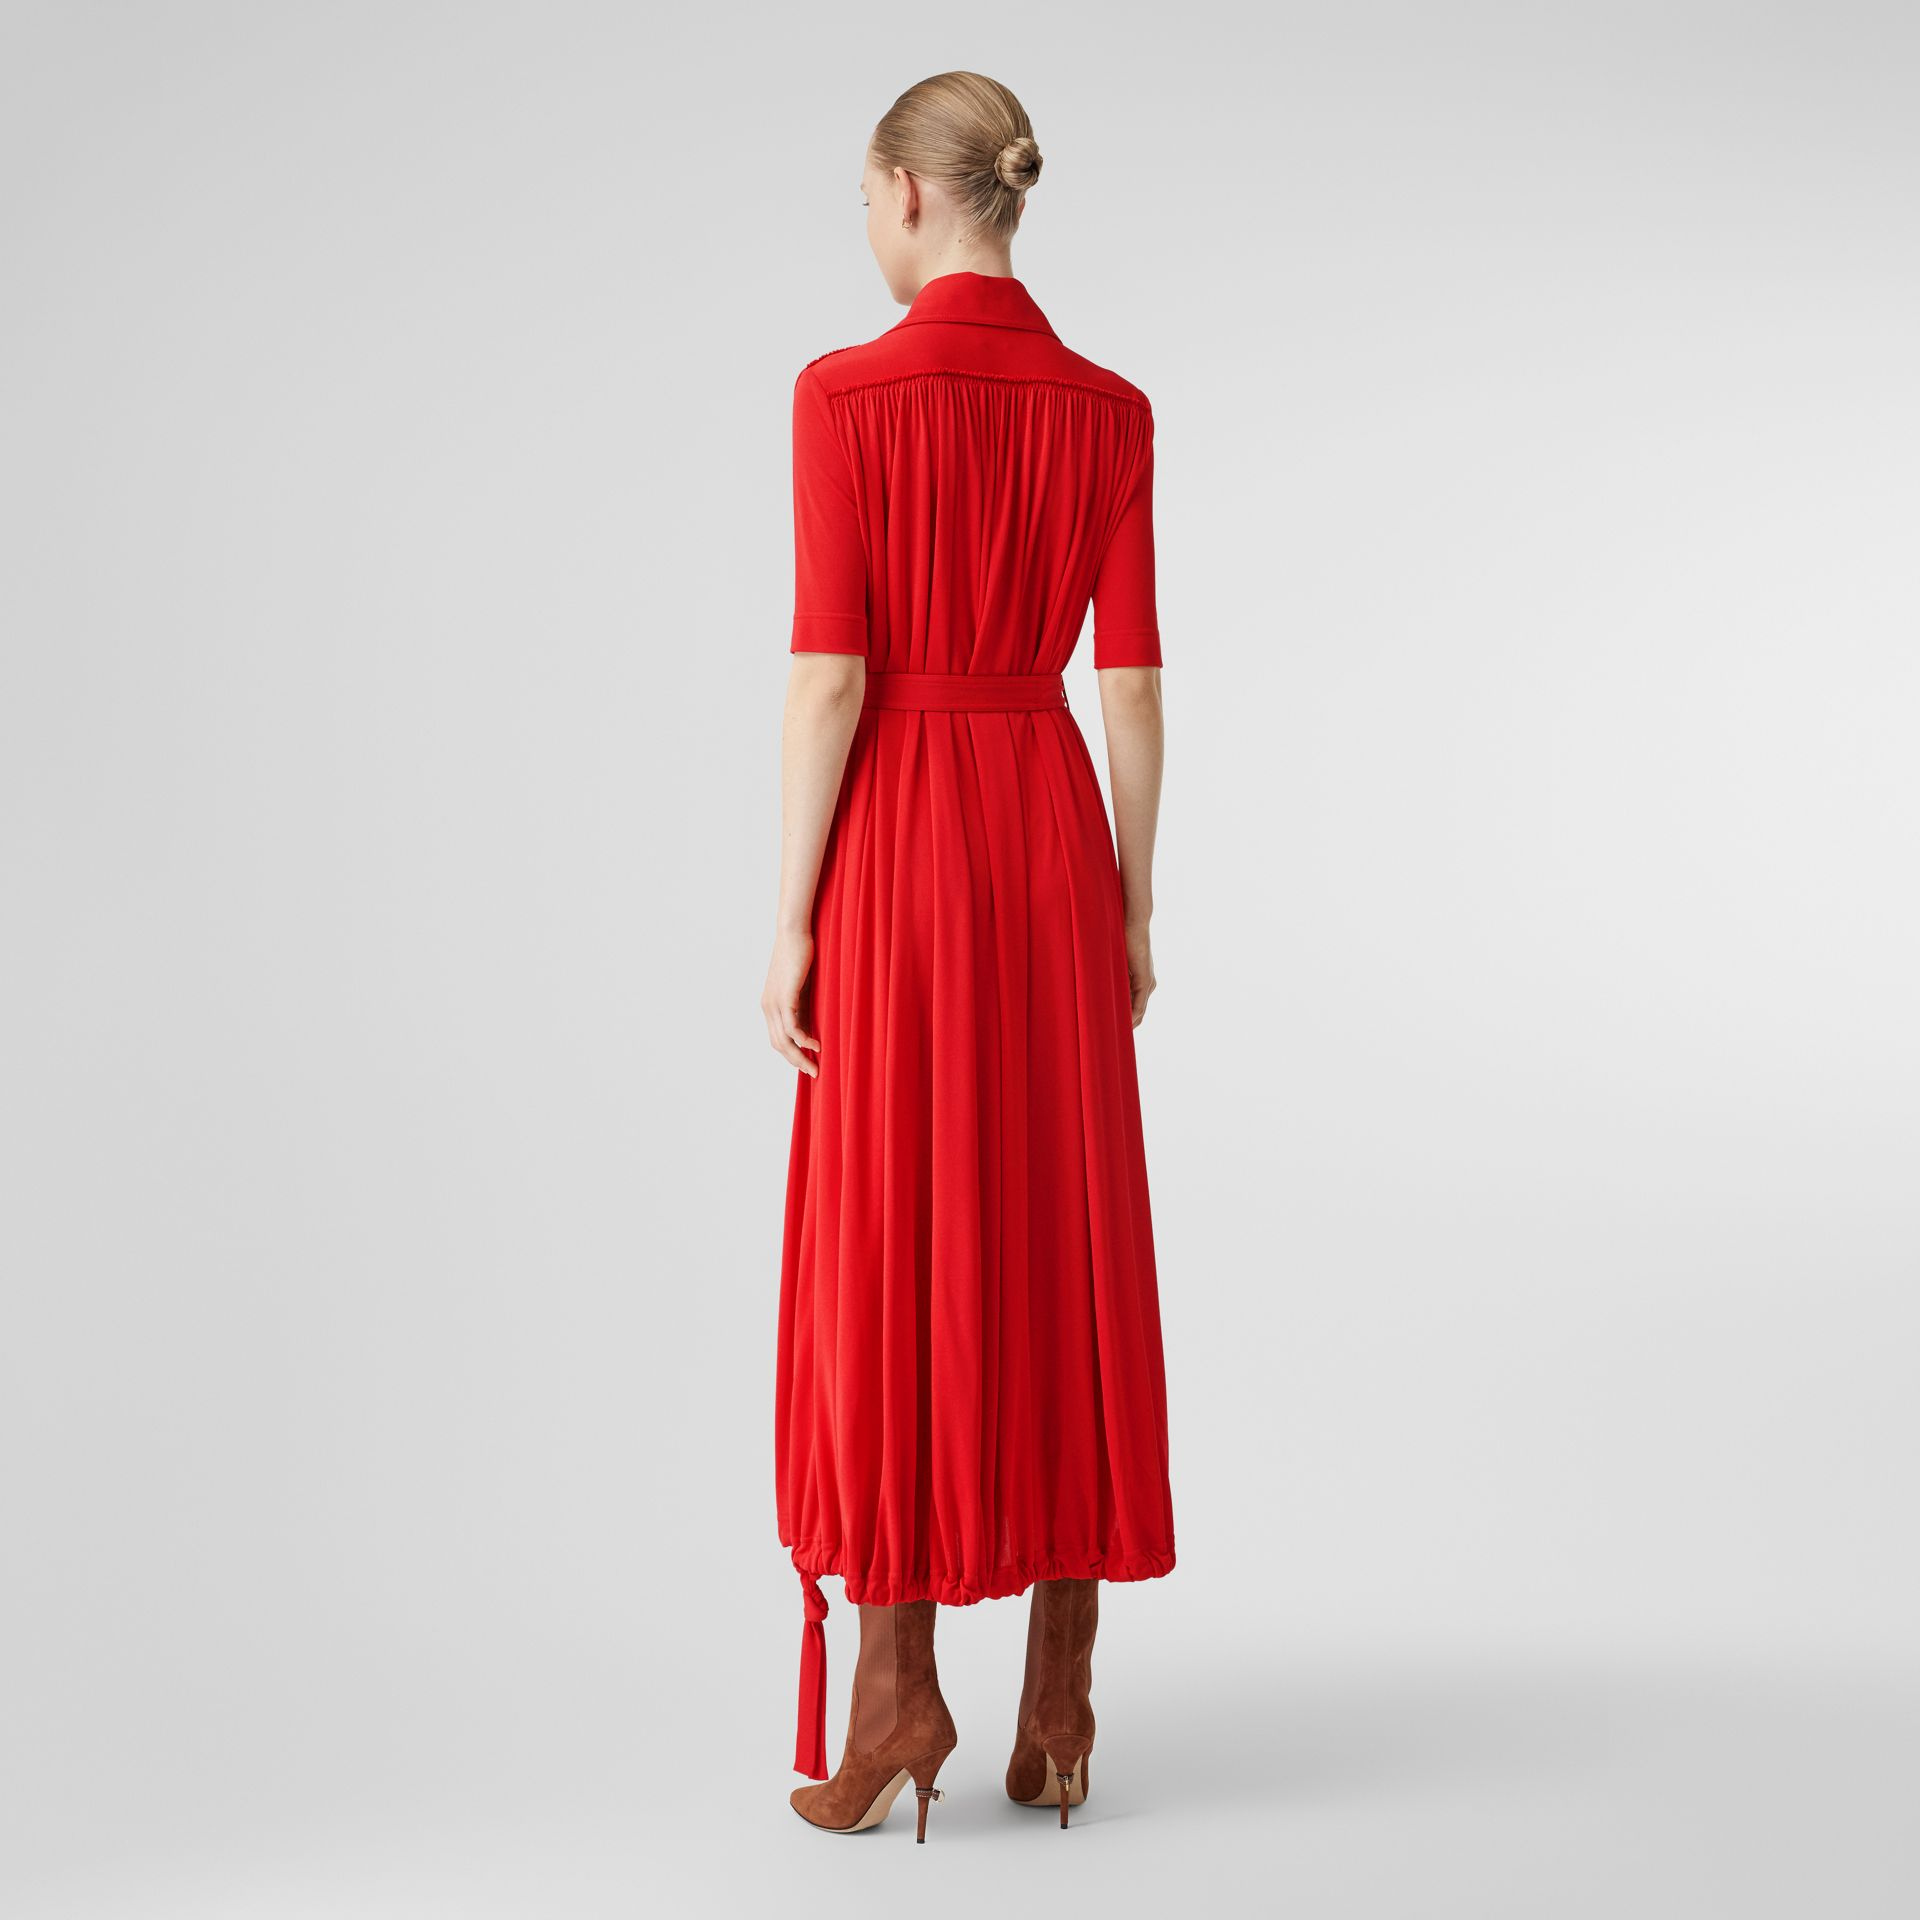 Short-sleeve Gathered Jersey Dress in Bright Red - Women | Burberry United Kingdom - gallery image 2